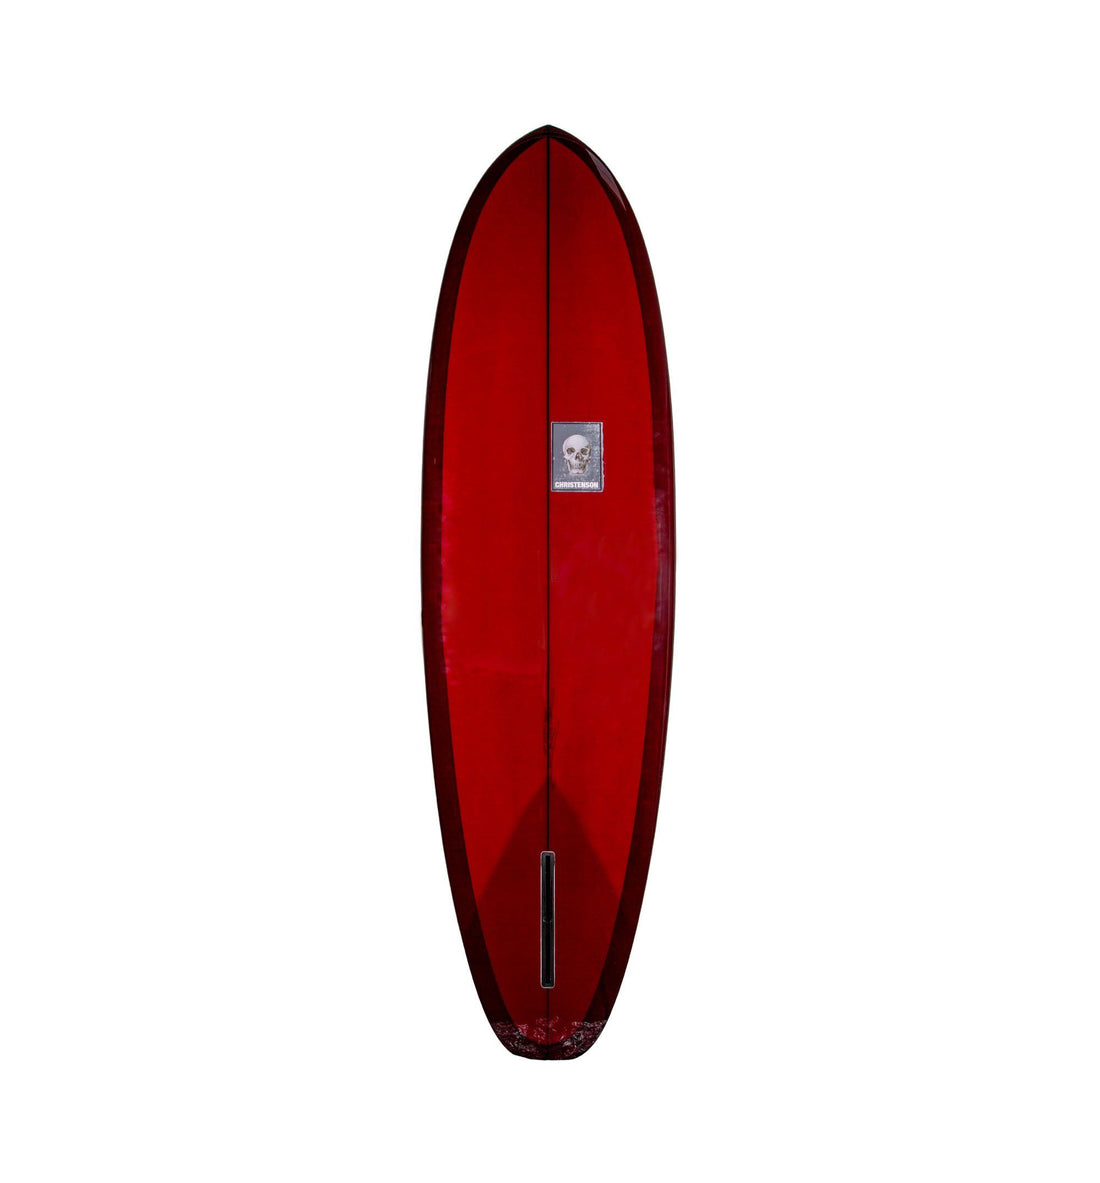 "Christenson Surfboards Flat Tracker - Red Tint - 6'10"" - Surf - Iron and Resin"